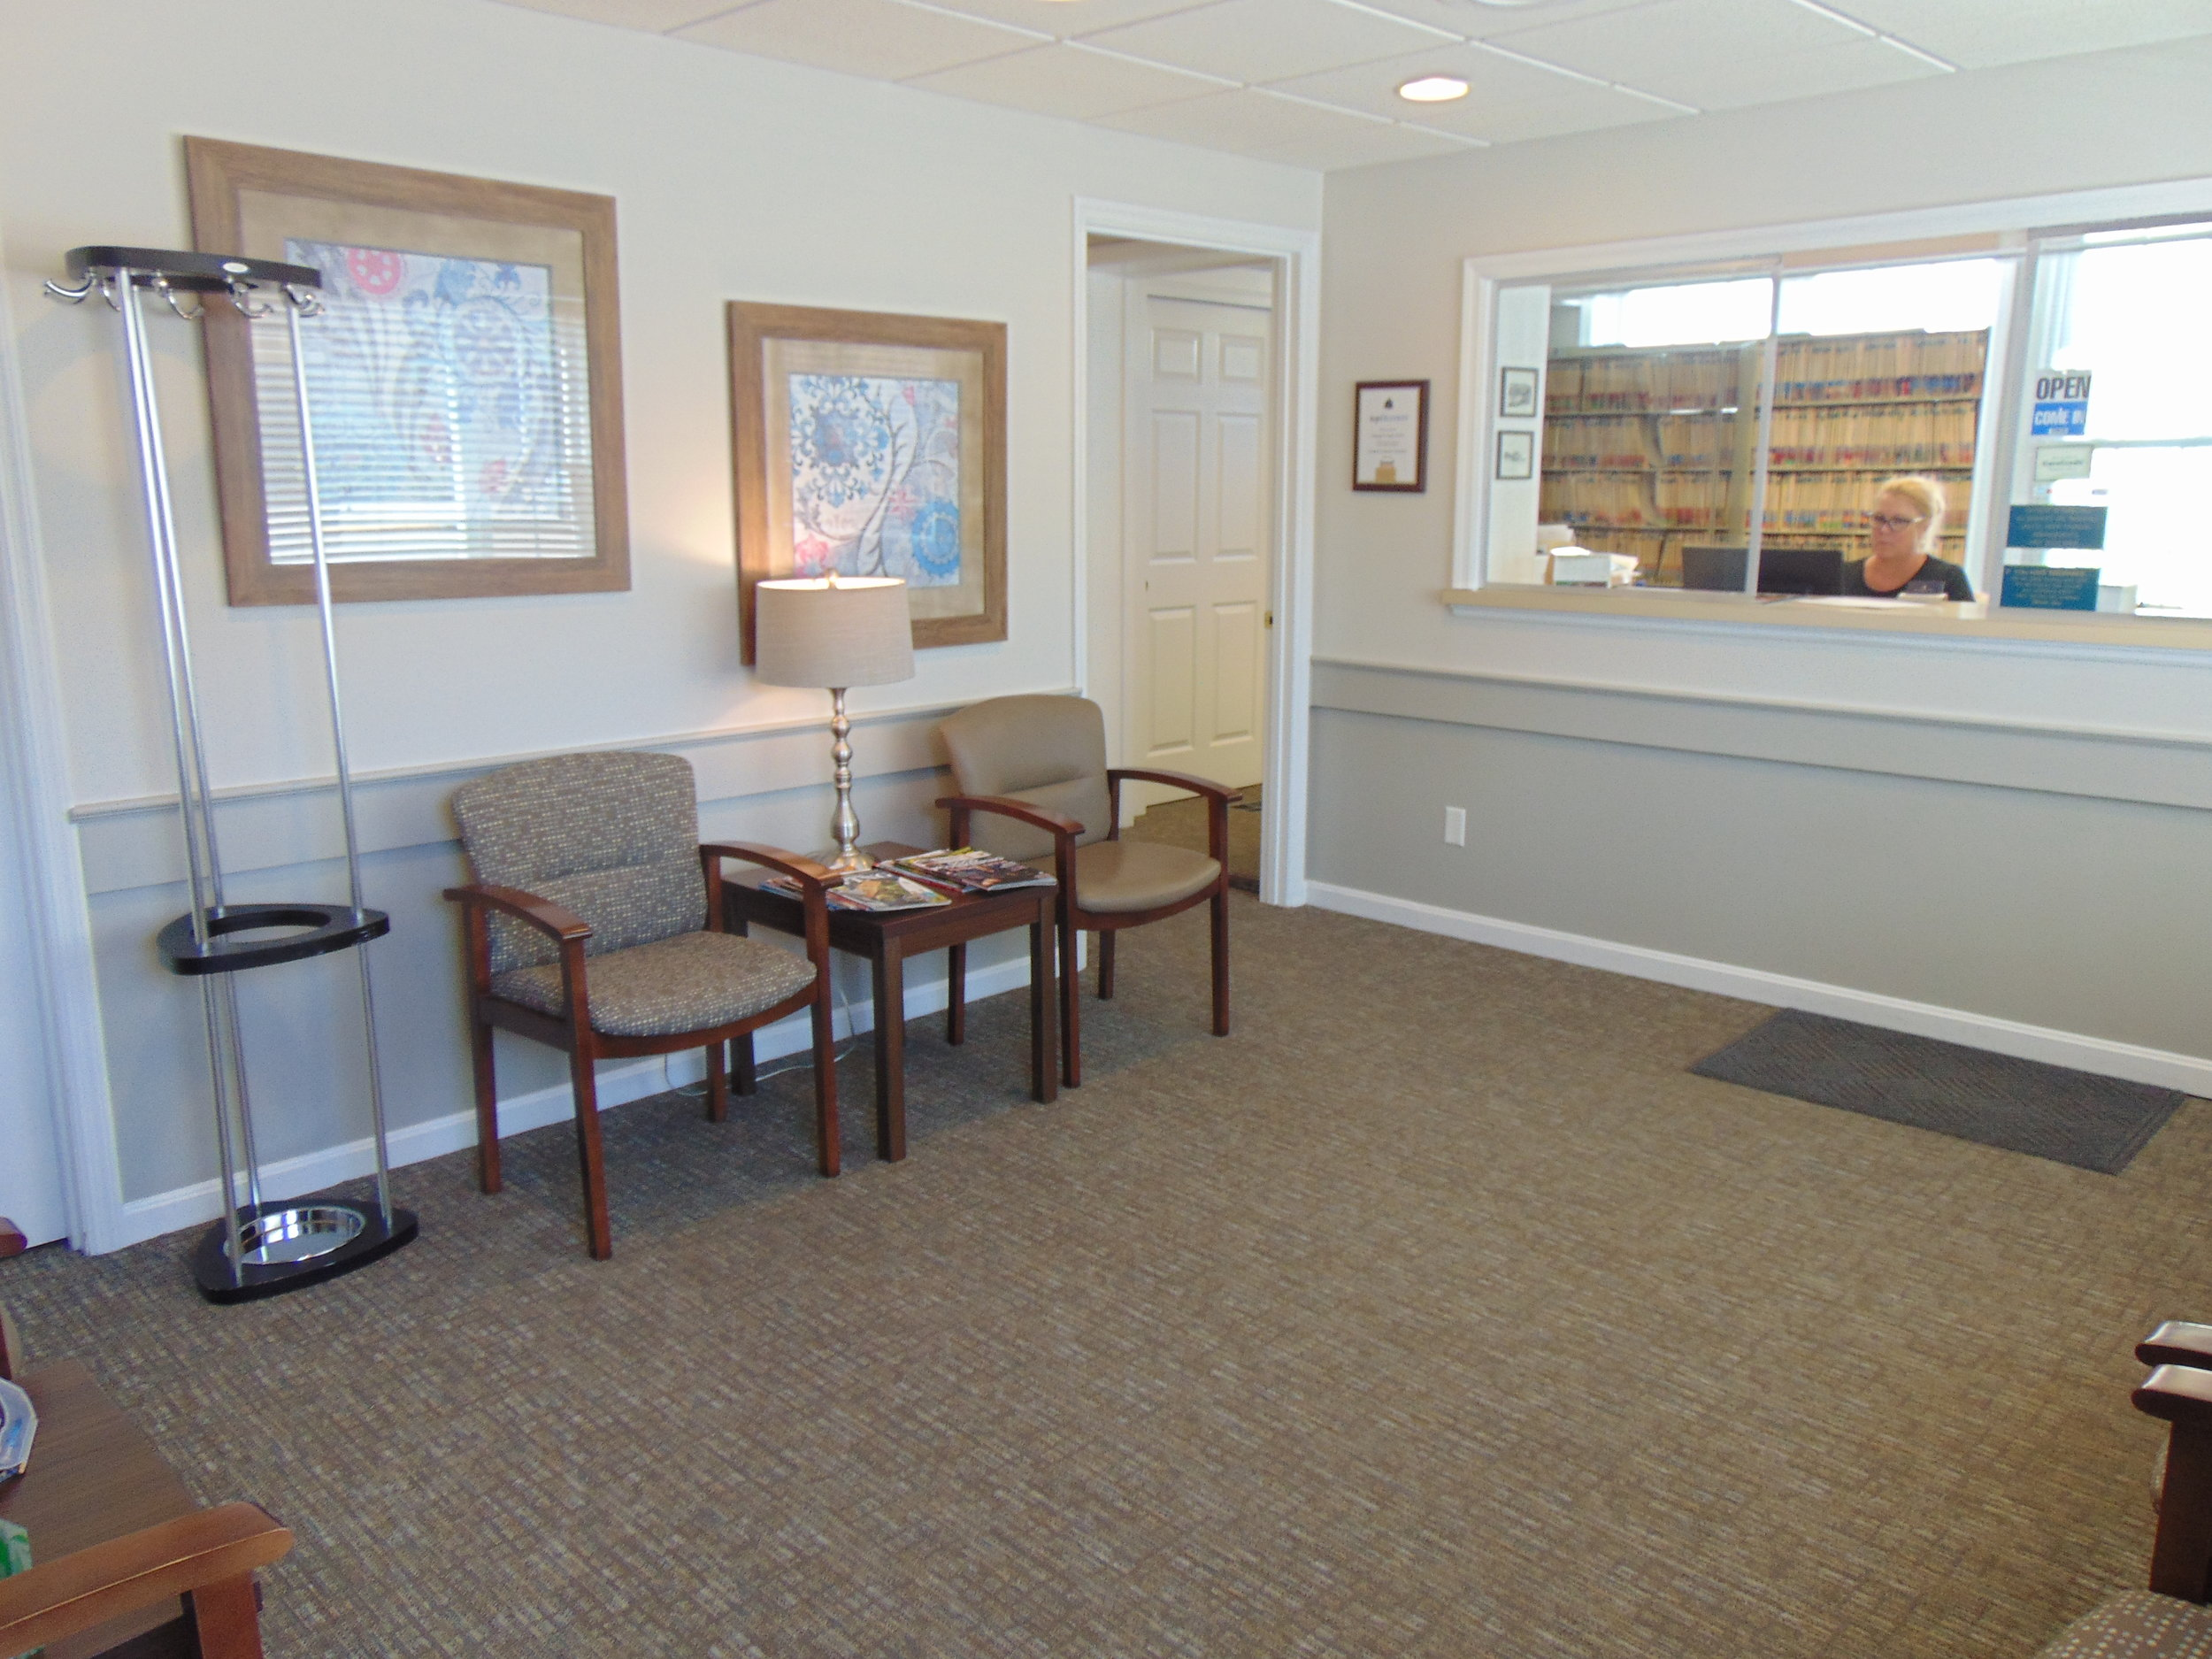 Dr. Jane Walker DDS office in Cincinnati, Ohio